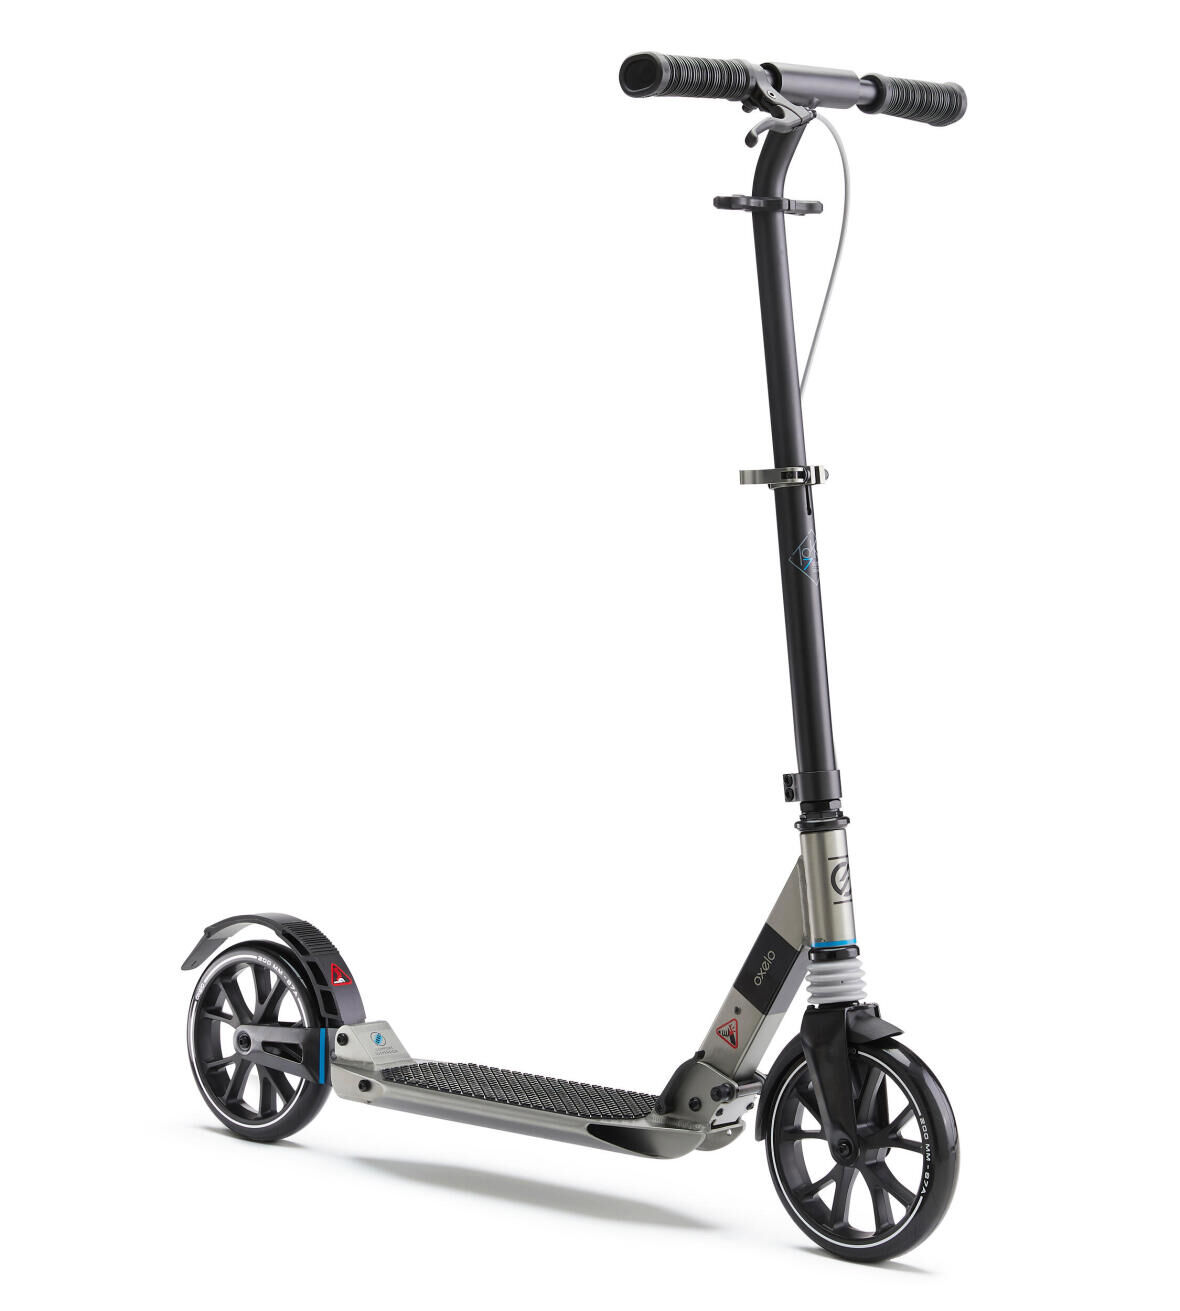 How to Choose the Best Adult Kick Scooter